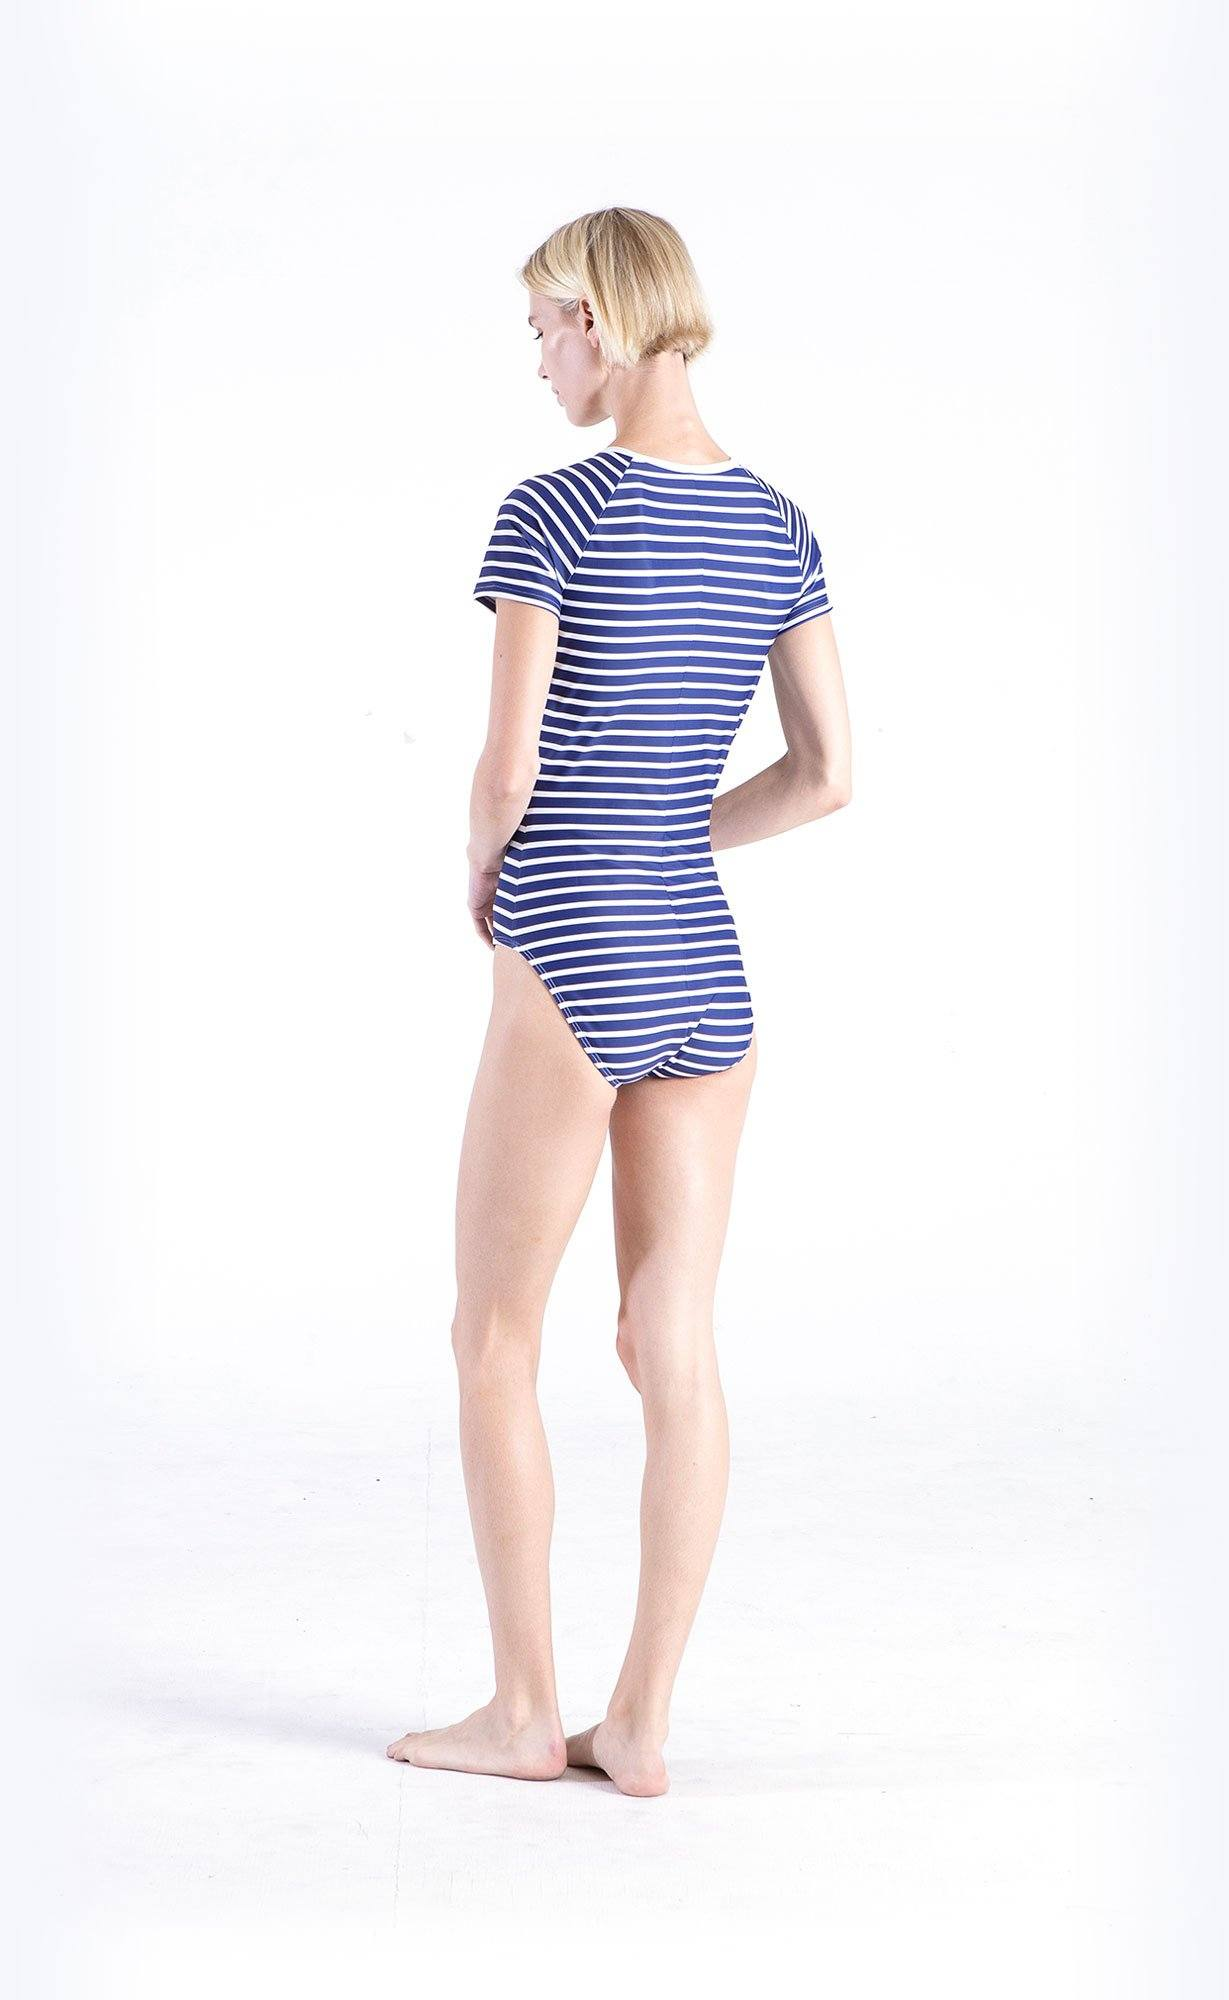 Short-Sleeved Swimsuit - Navy Stripes